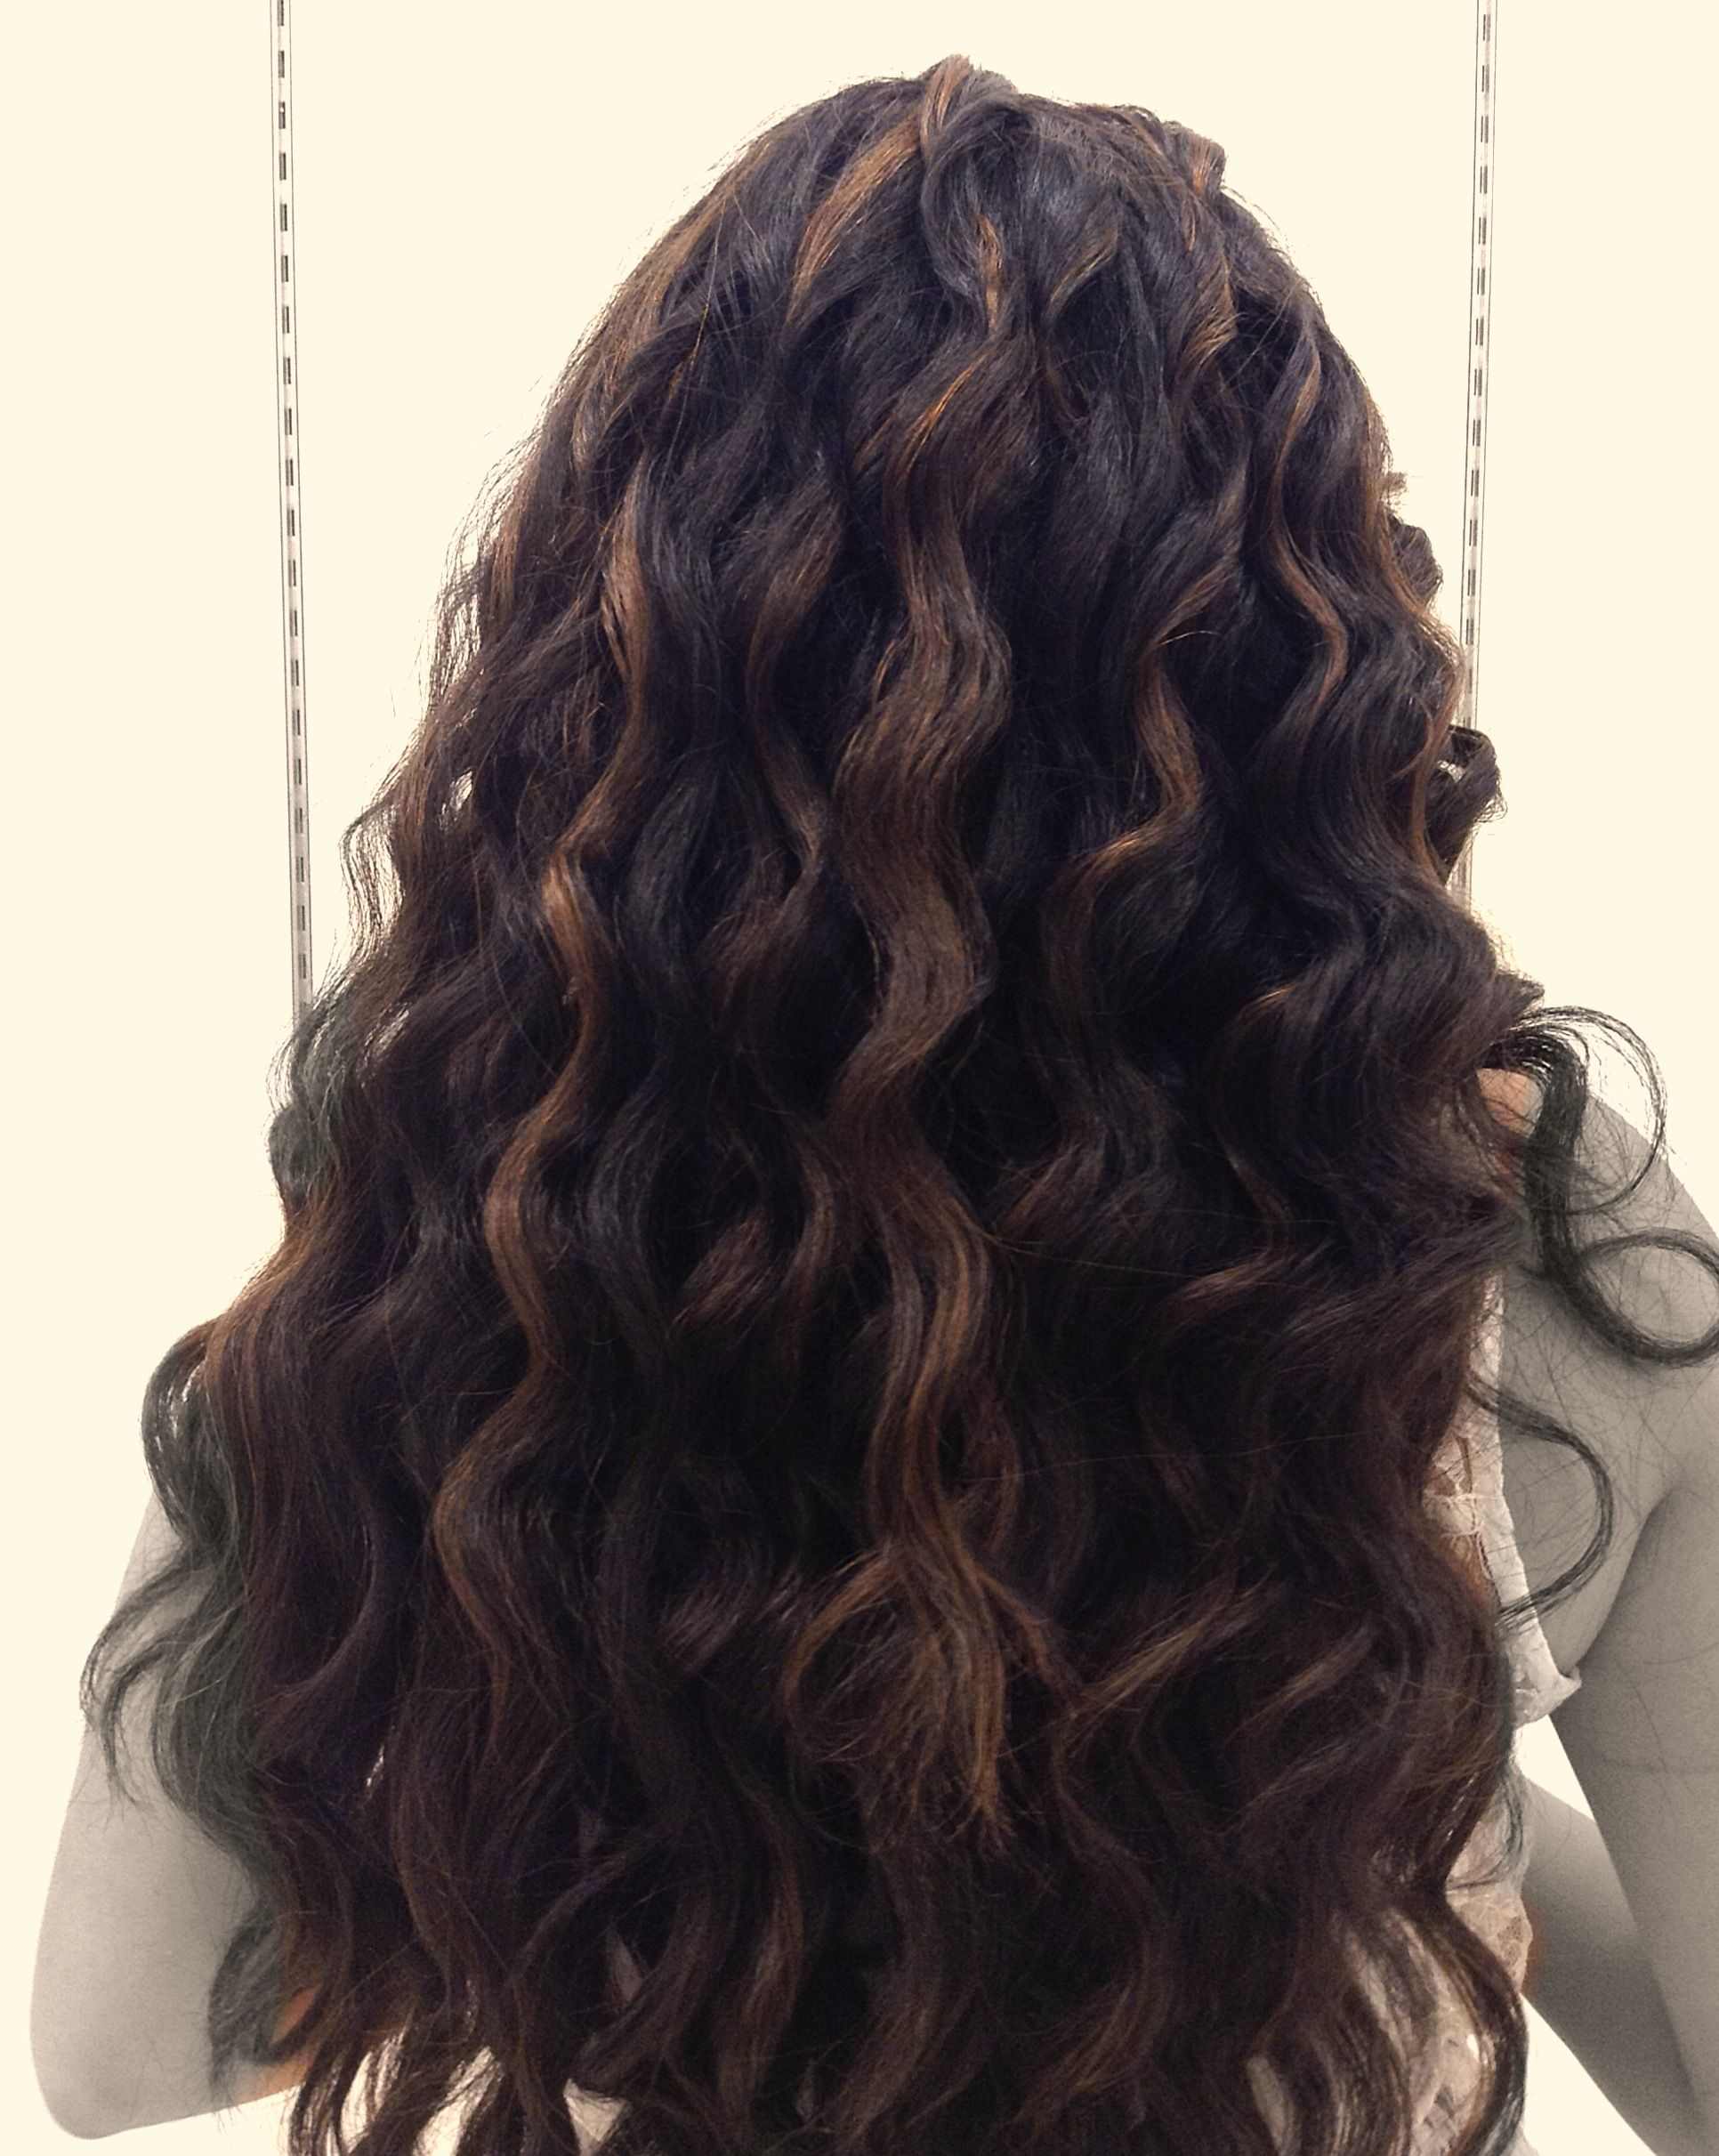 Caramel Highlights On Black Hair With Images Hair Pale Skin